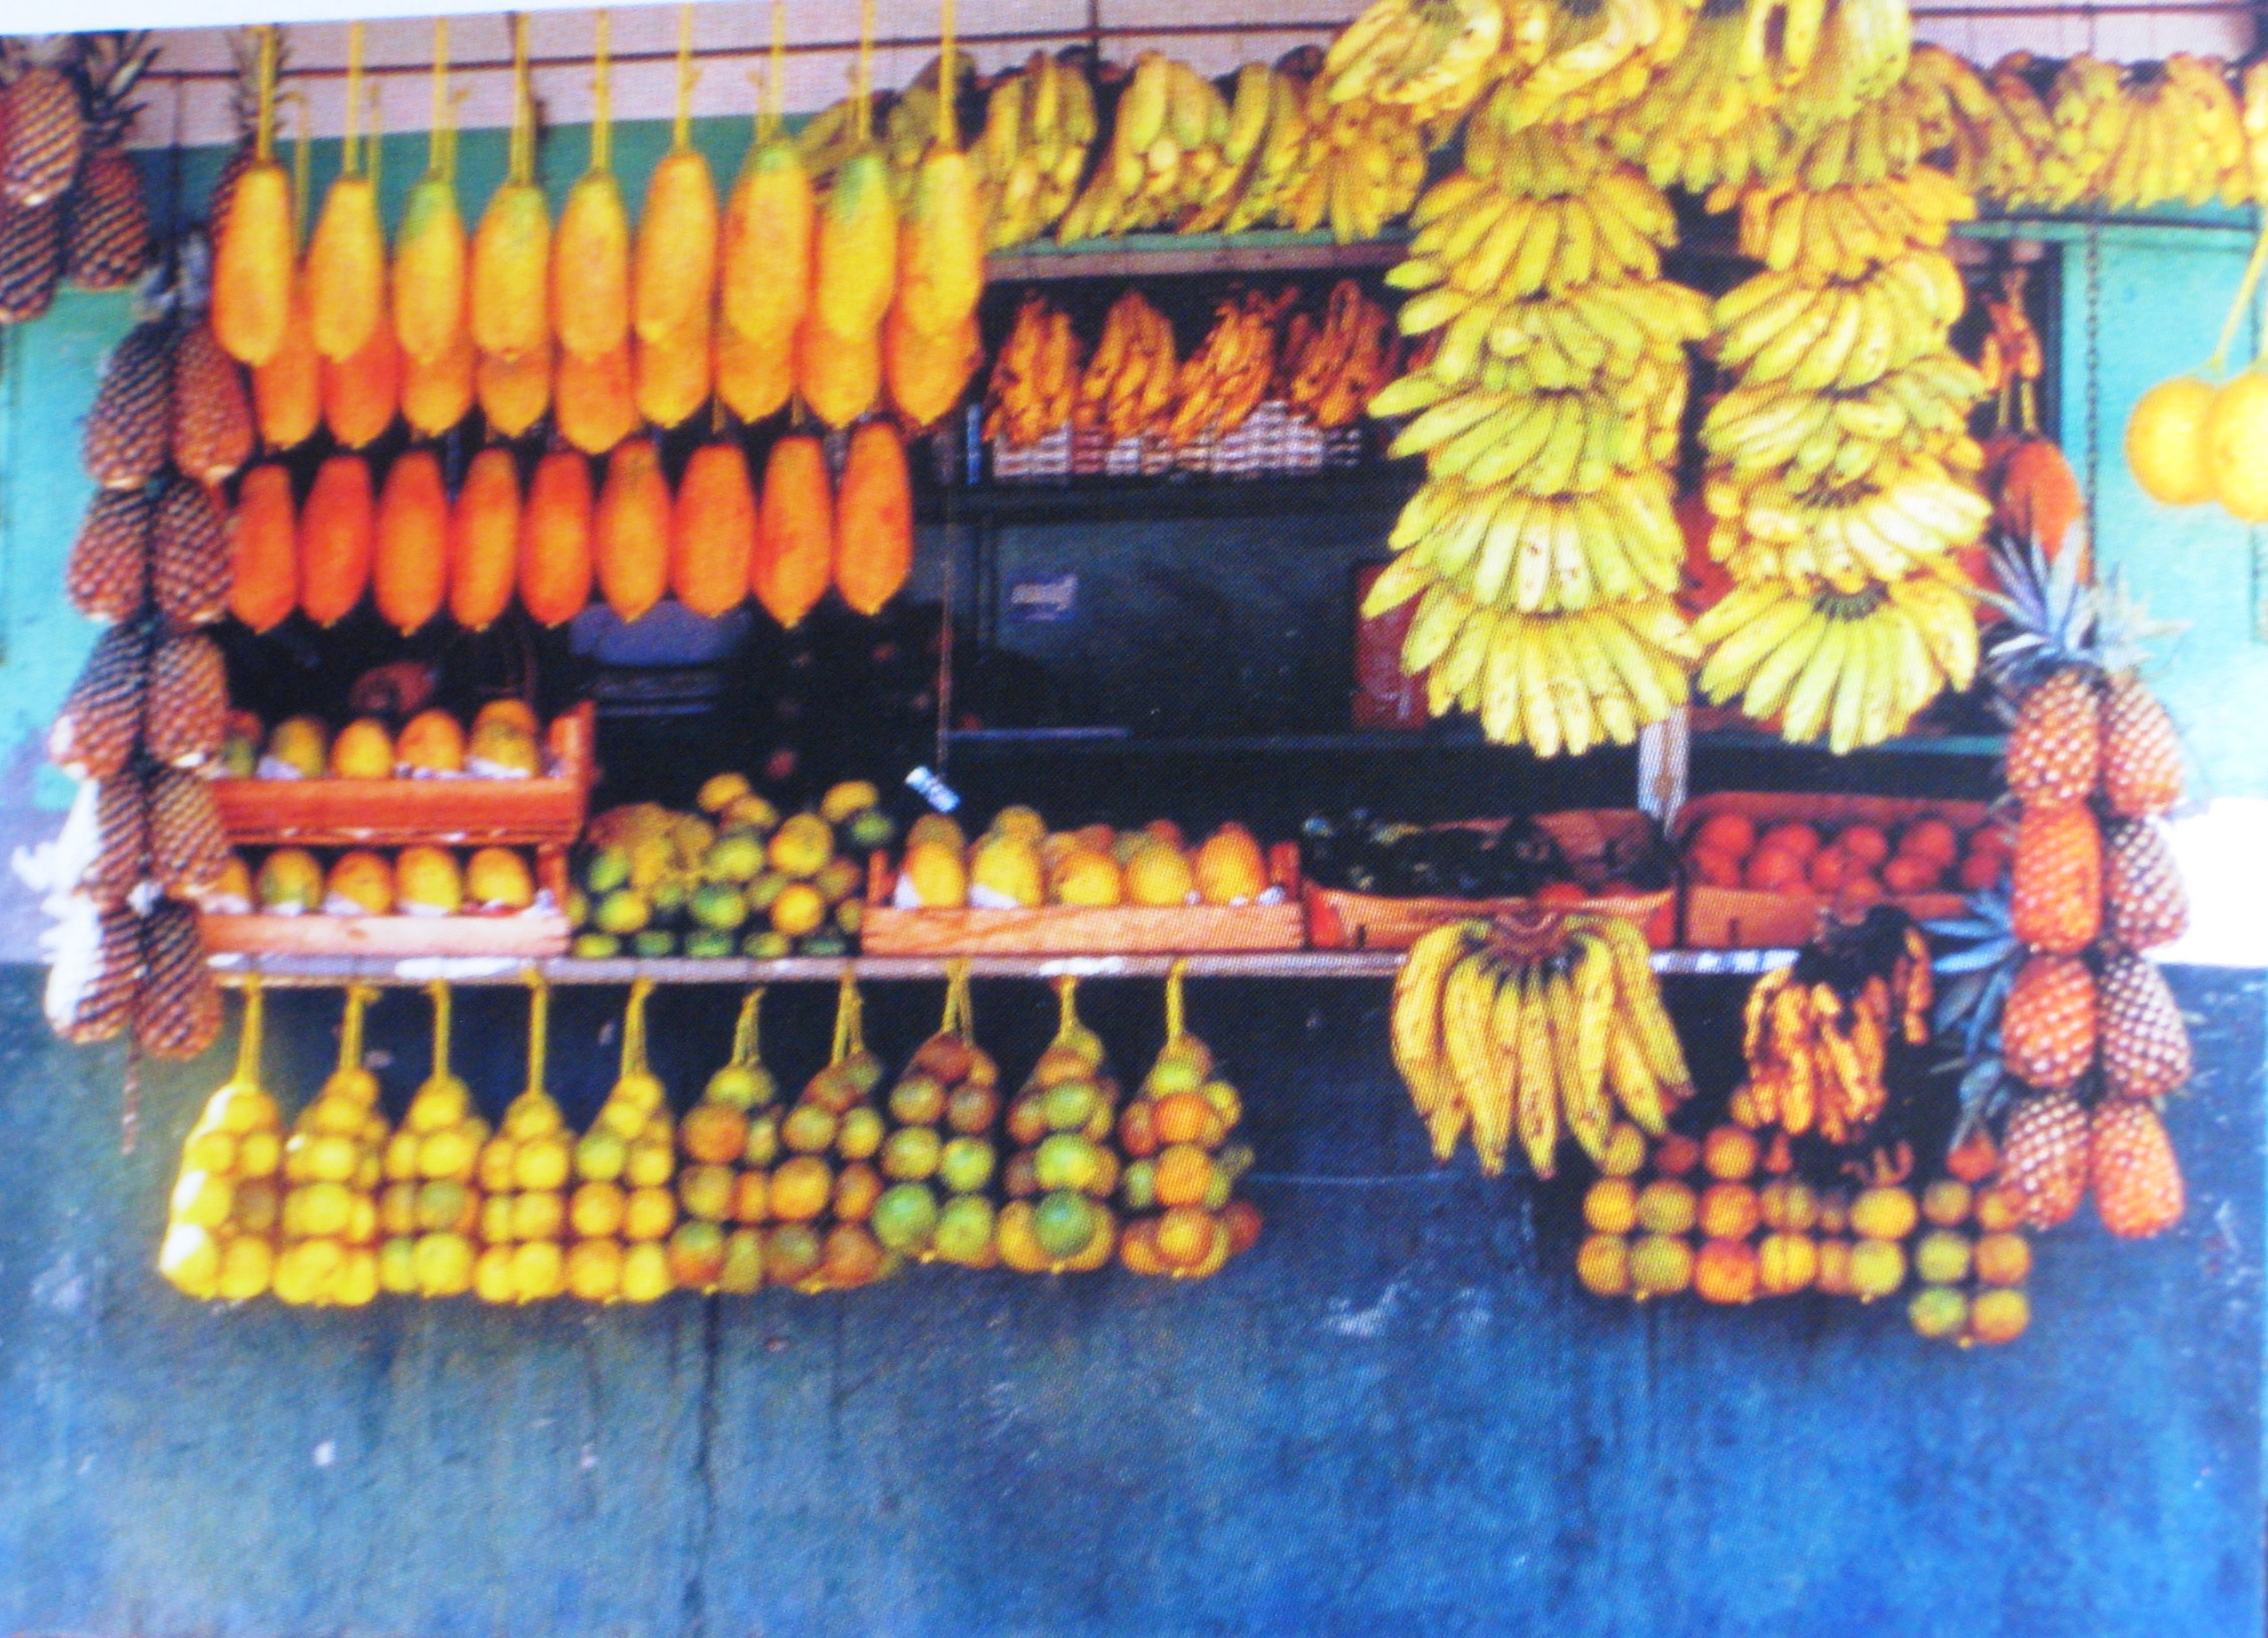 Roadside fruit stall - Aguas Calientes